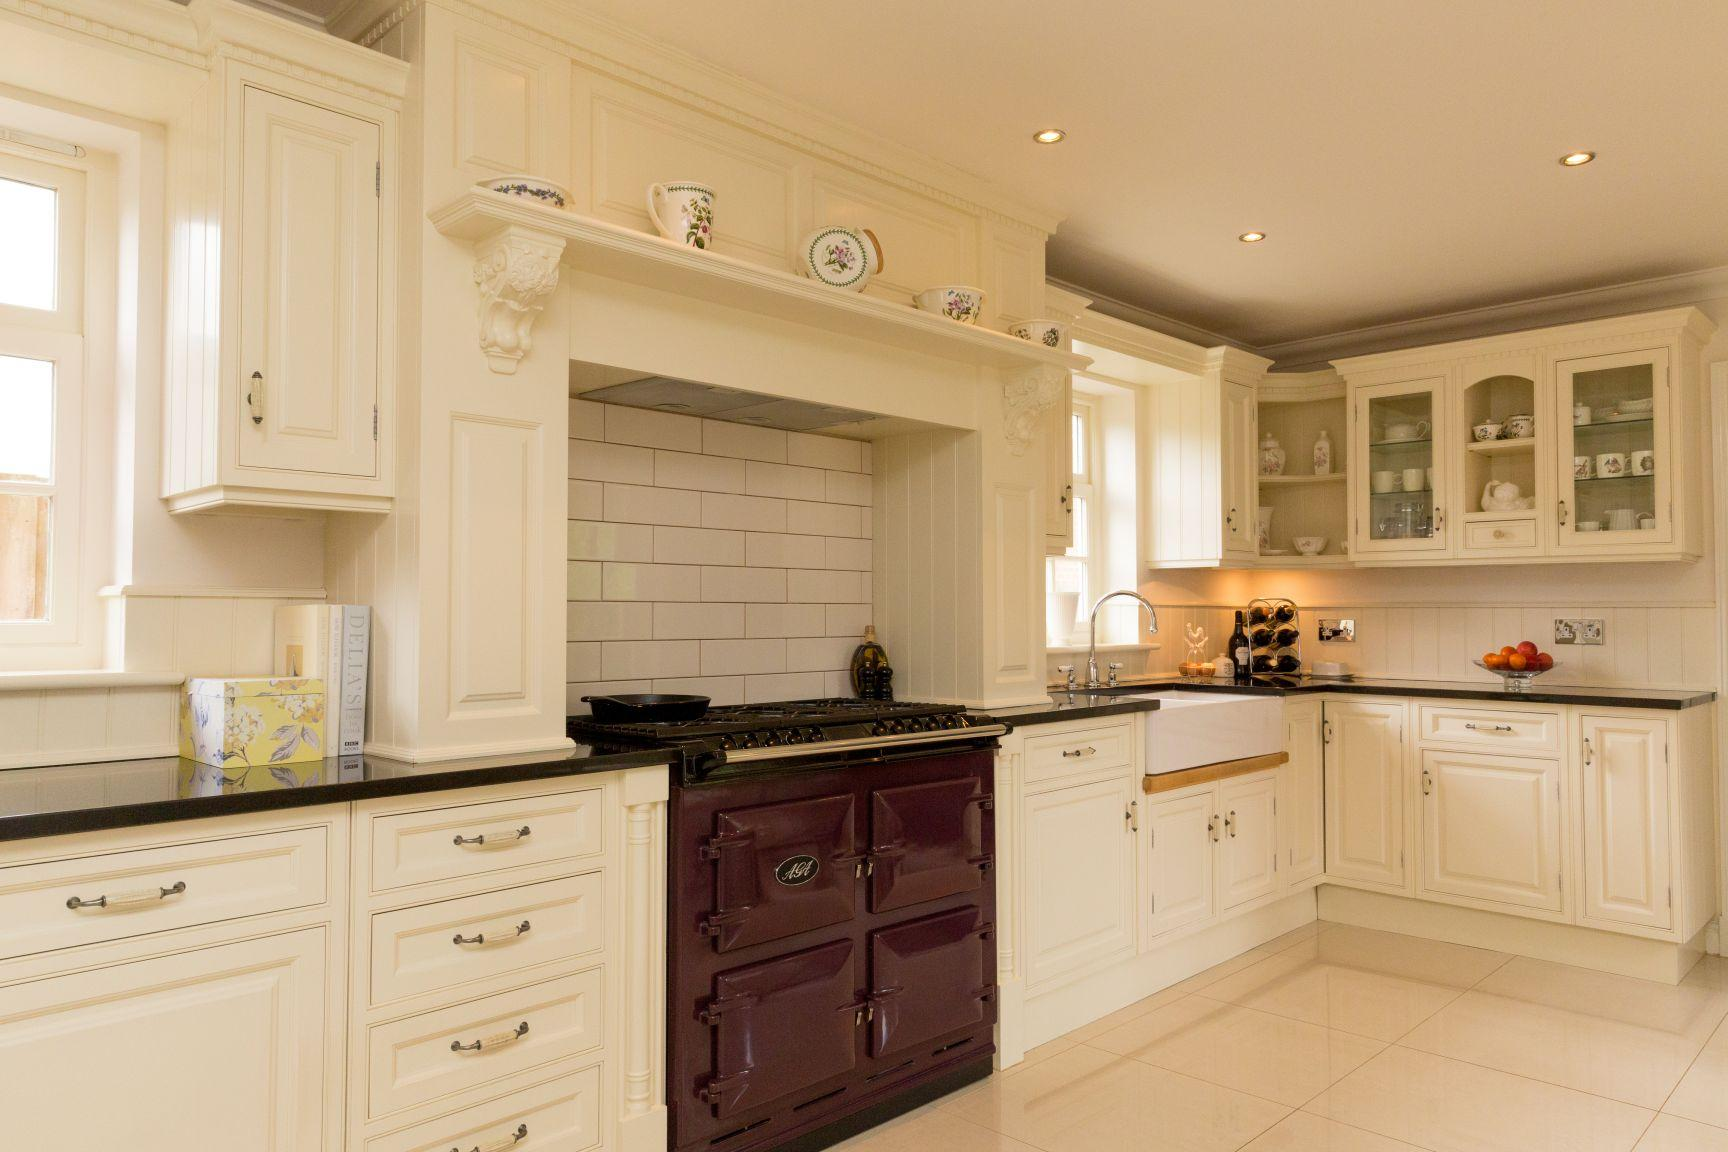 designing kitchens in leicester bettinsons kitchens glenfield kitchens fitted kitchens kitchen design and